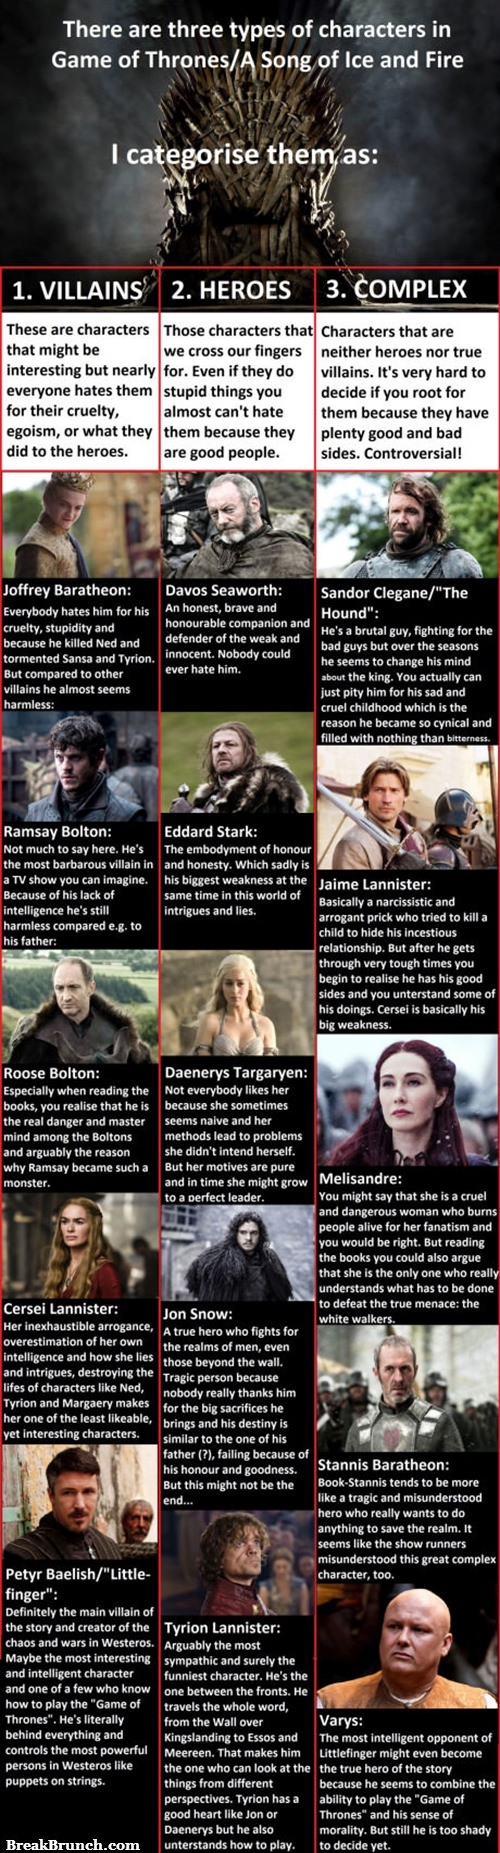 Game of Thrones characters breakdown